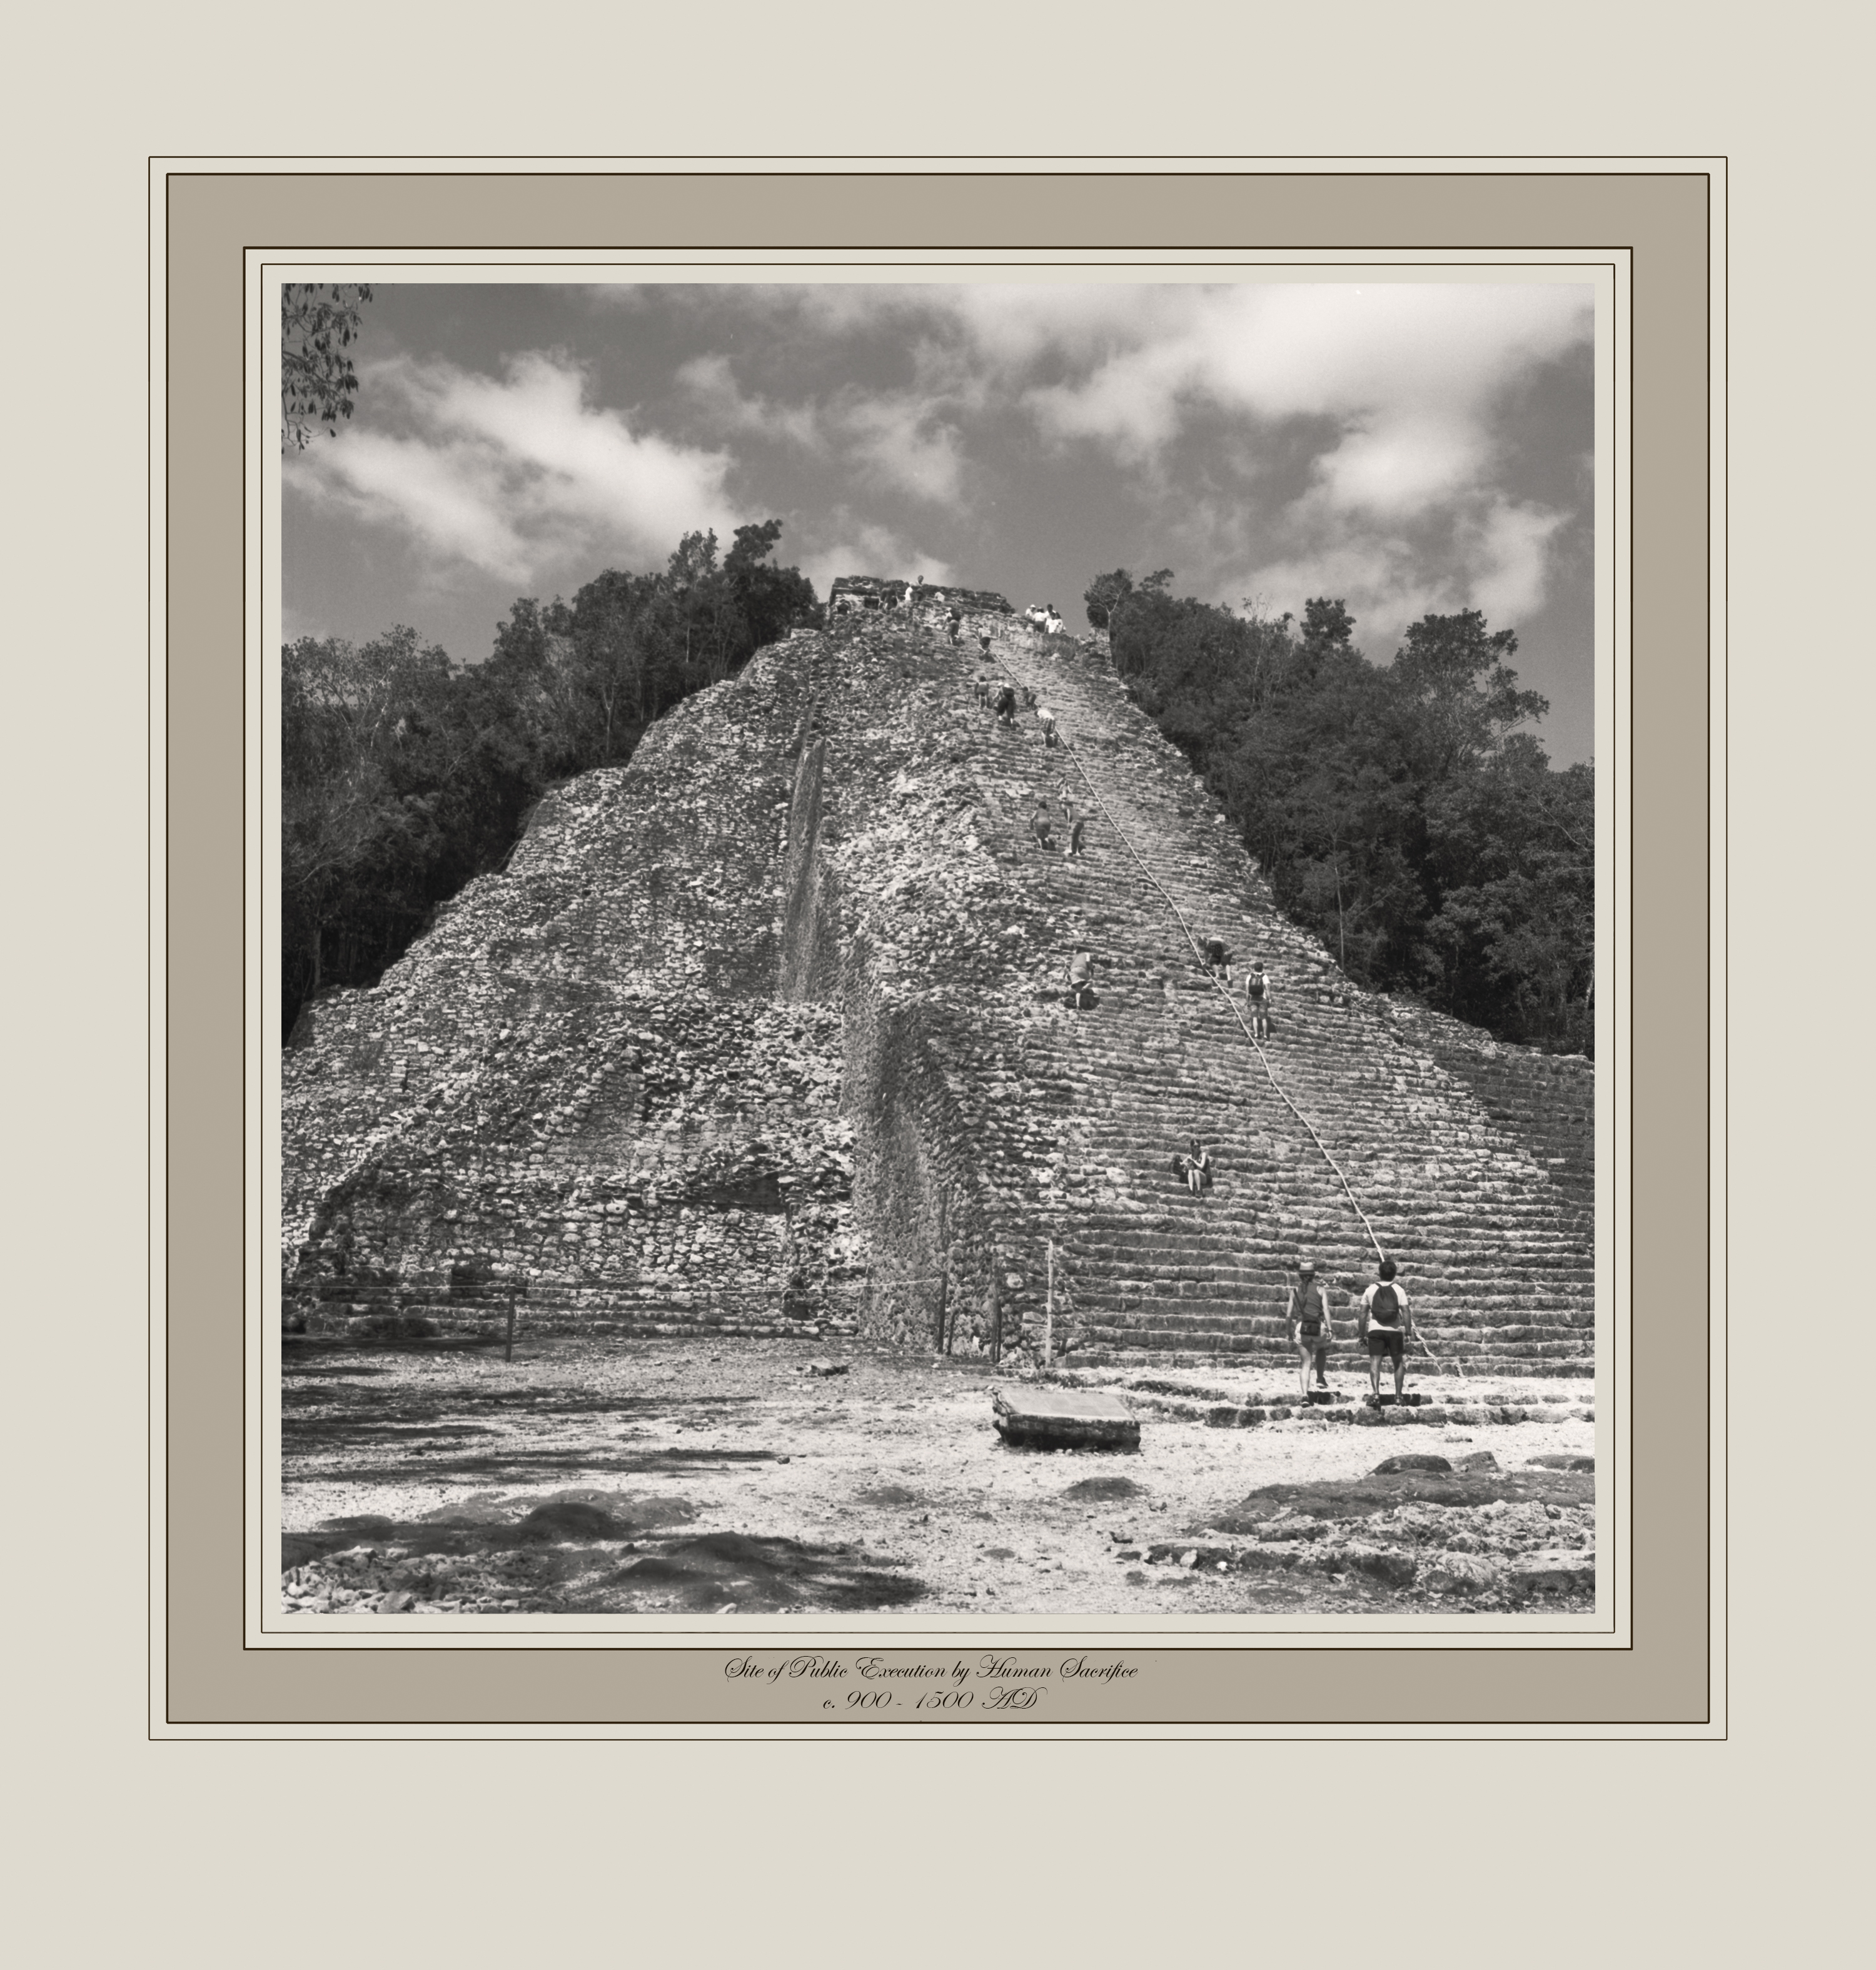 Site of Public Executions by Human Sacrifice c. 900-1500 AD (Nohuch Mul Pyramid, Coba, Mexico)